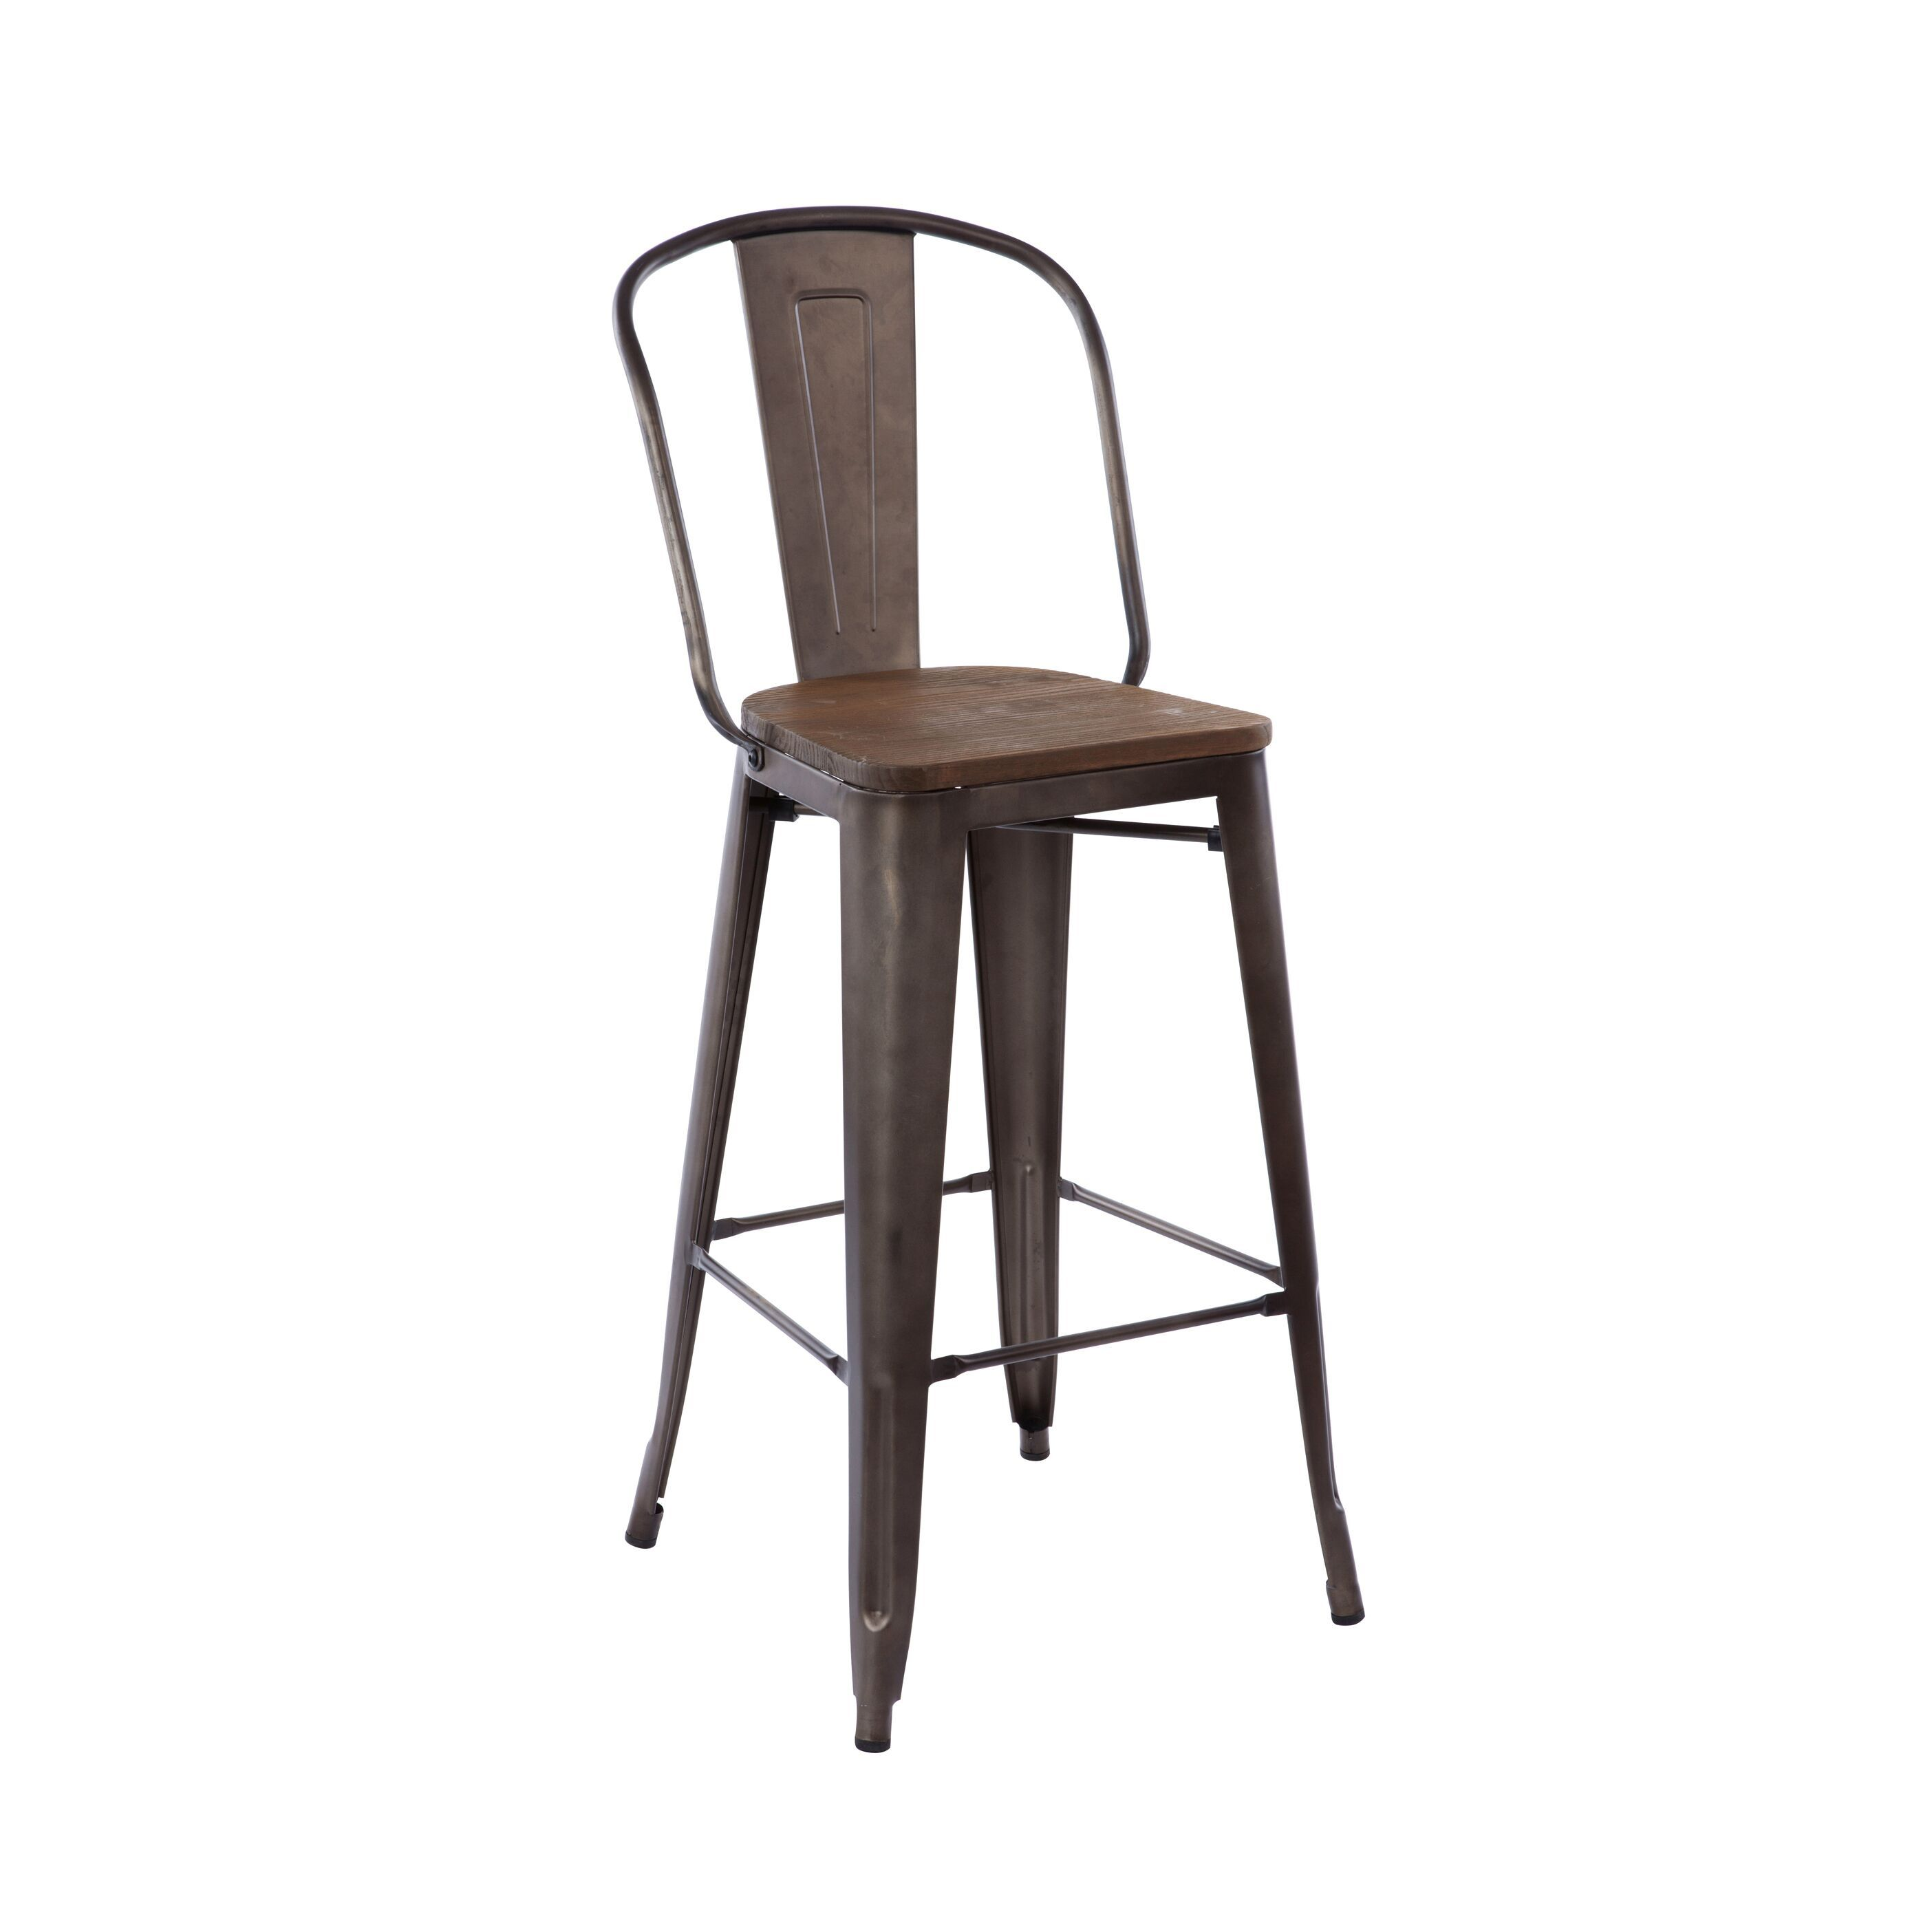 Marvelous Antique Rusty Industrial Tolix High Back Bar Stool Wood Seat Gmtry Best Dining Table And Chair Ideas Images Gmtryco